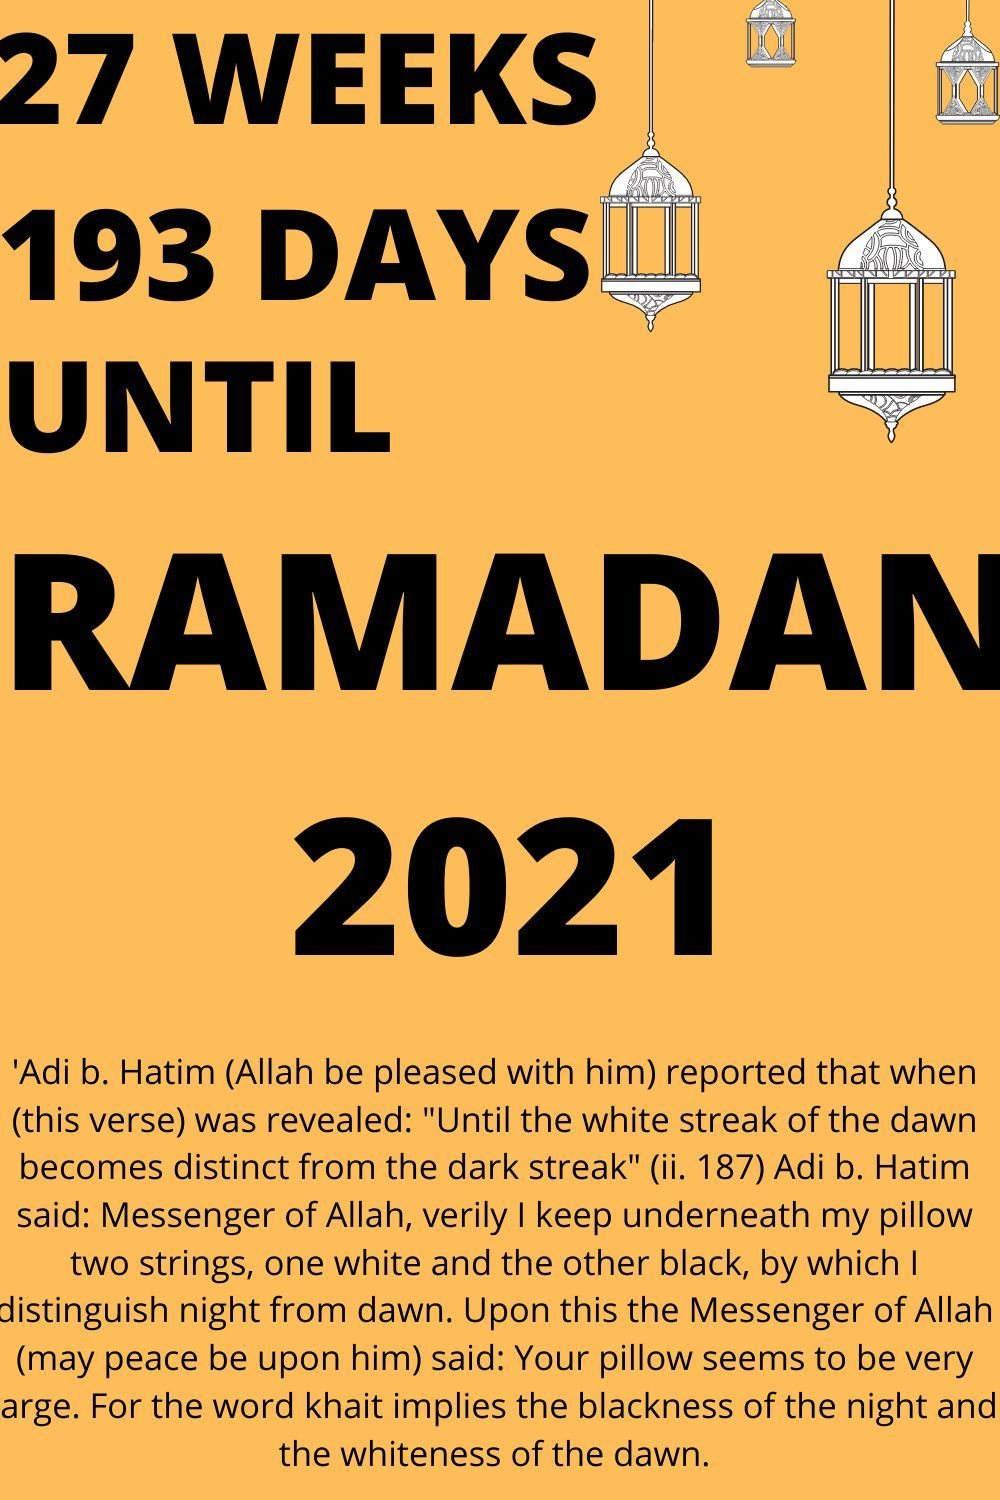 How To Prepare For Ramadan 2021 In 2021 Ramadan Preparing For Ramadan Preparation